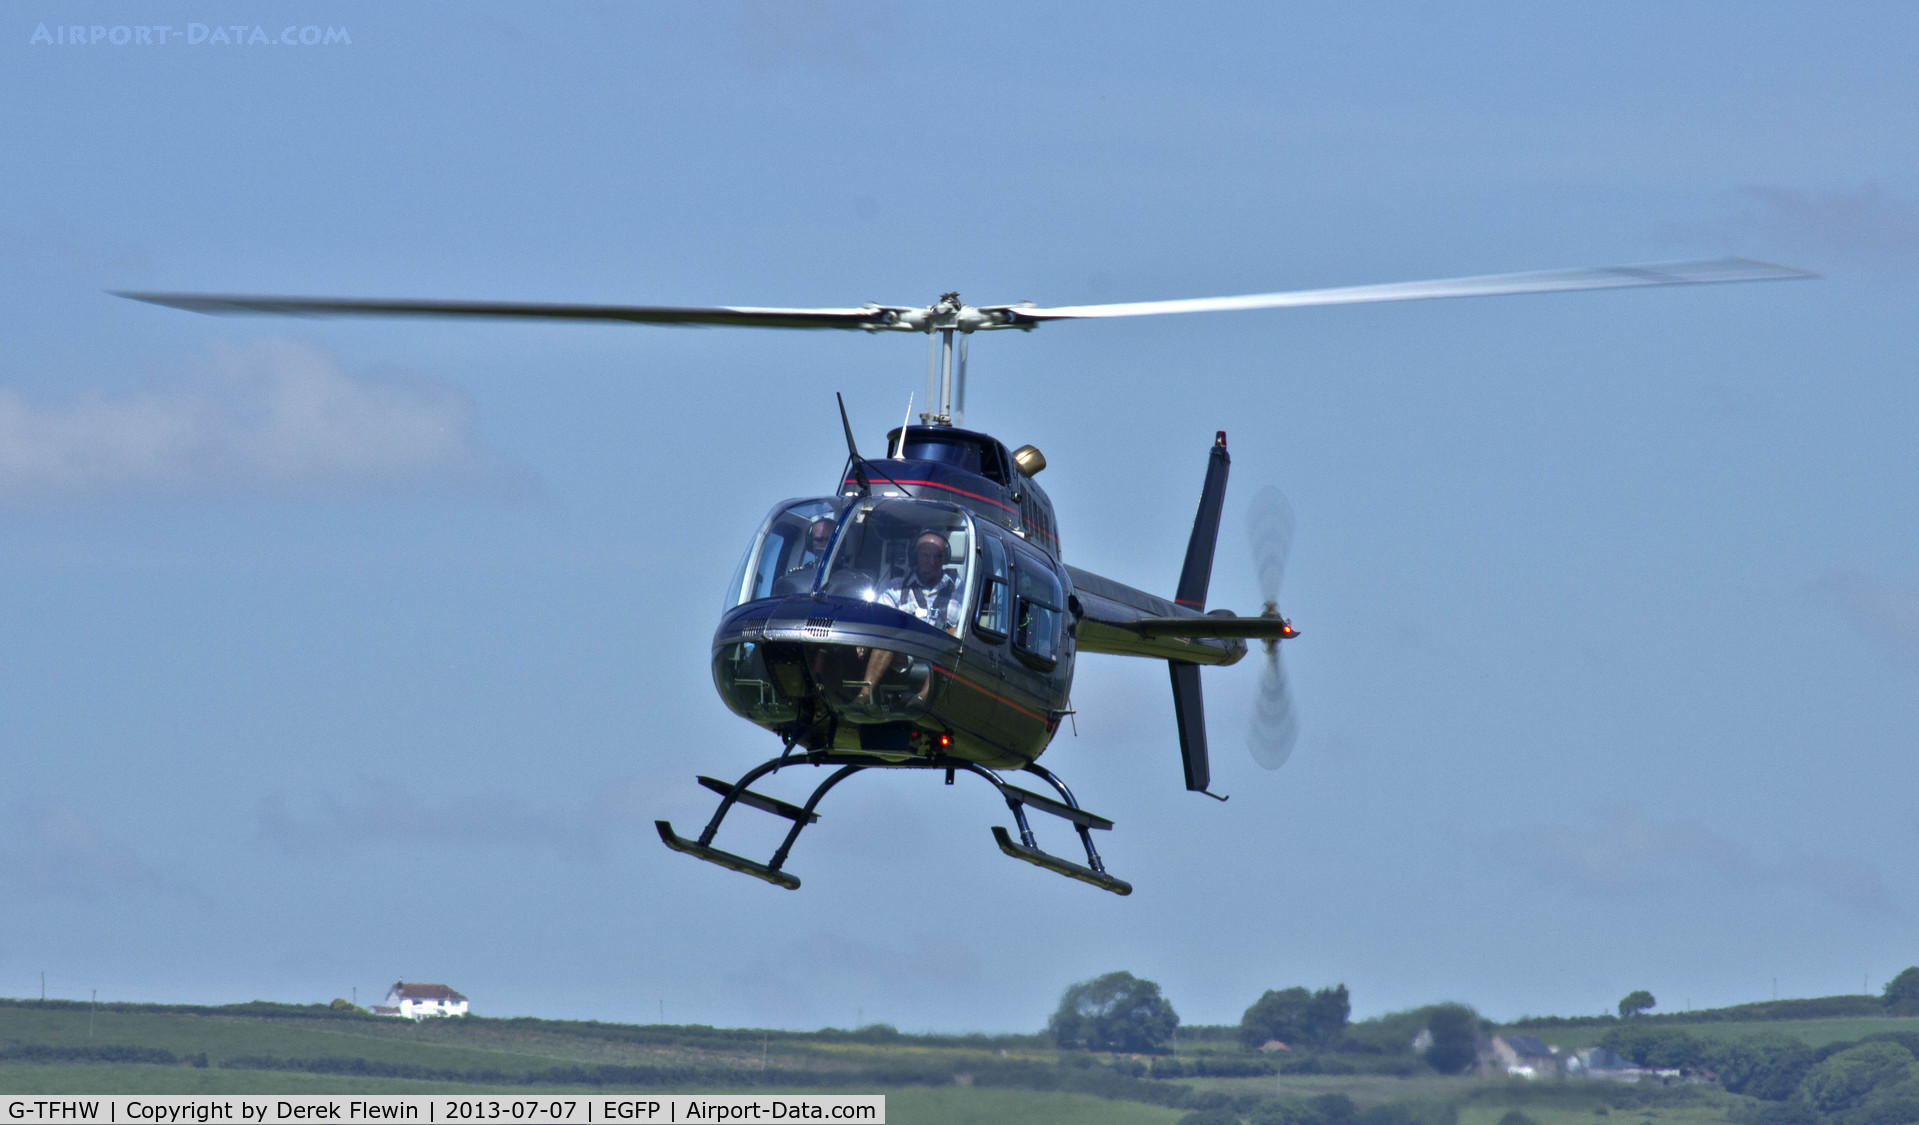 G-TFHW, 1980 Bell 206B JetRanger III C/N 3179, Bell 206B based at Haverfordwest Airport doing pleasure trips from Pembrey, on approach Runway 22.